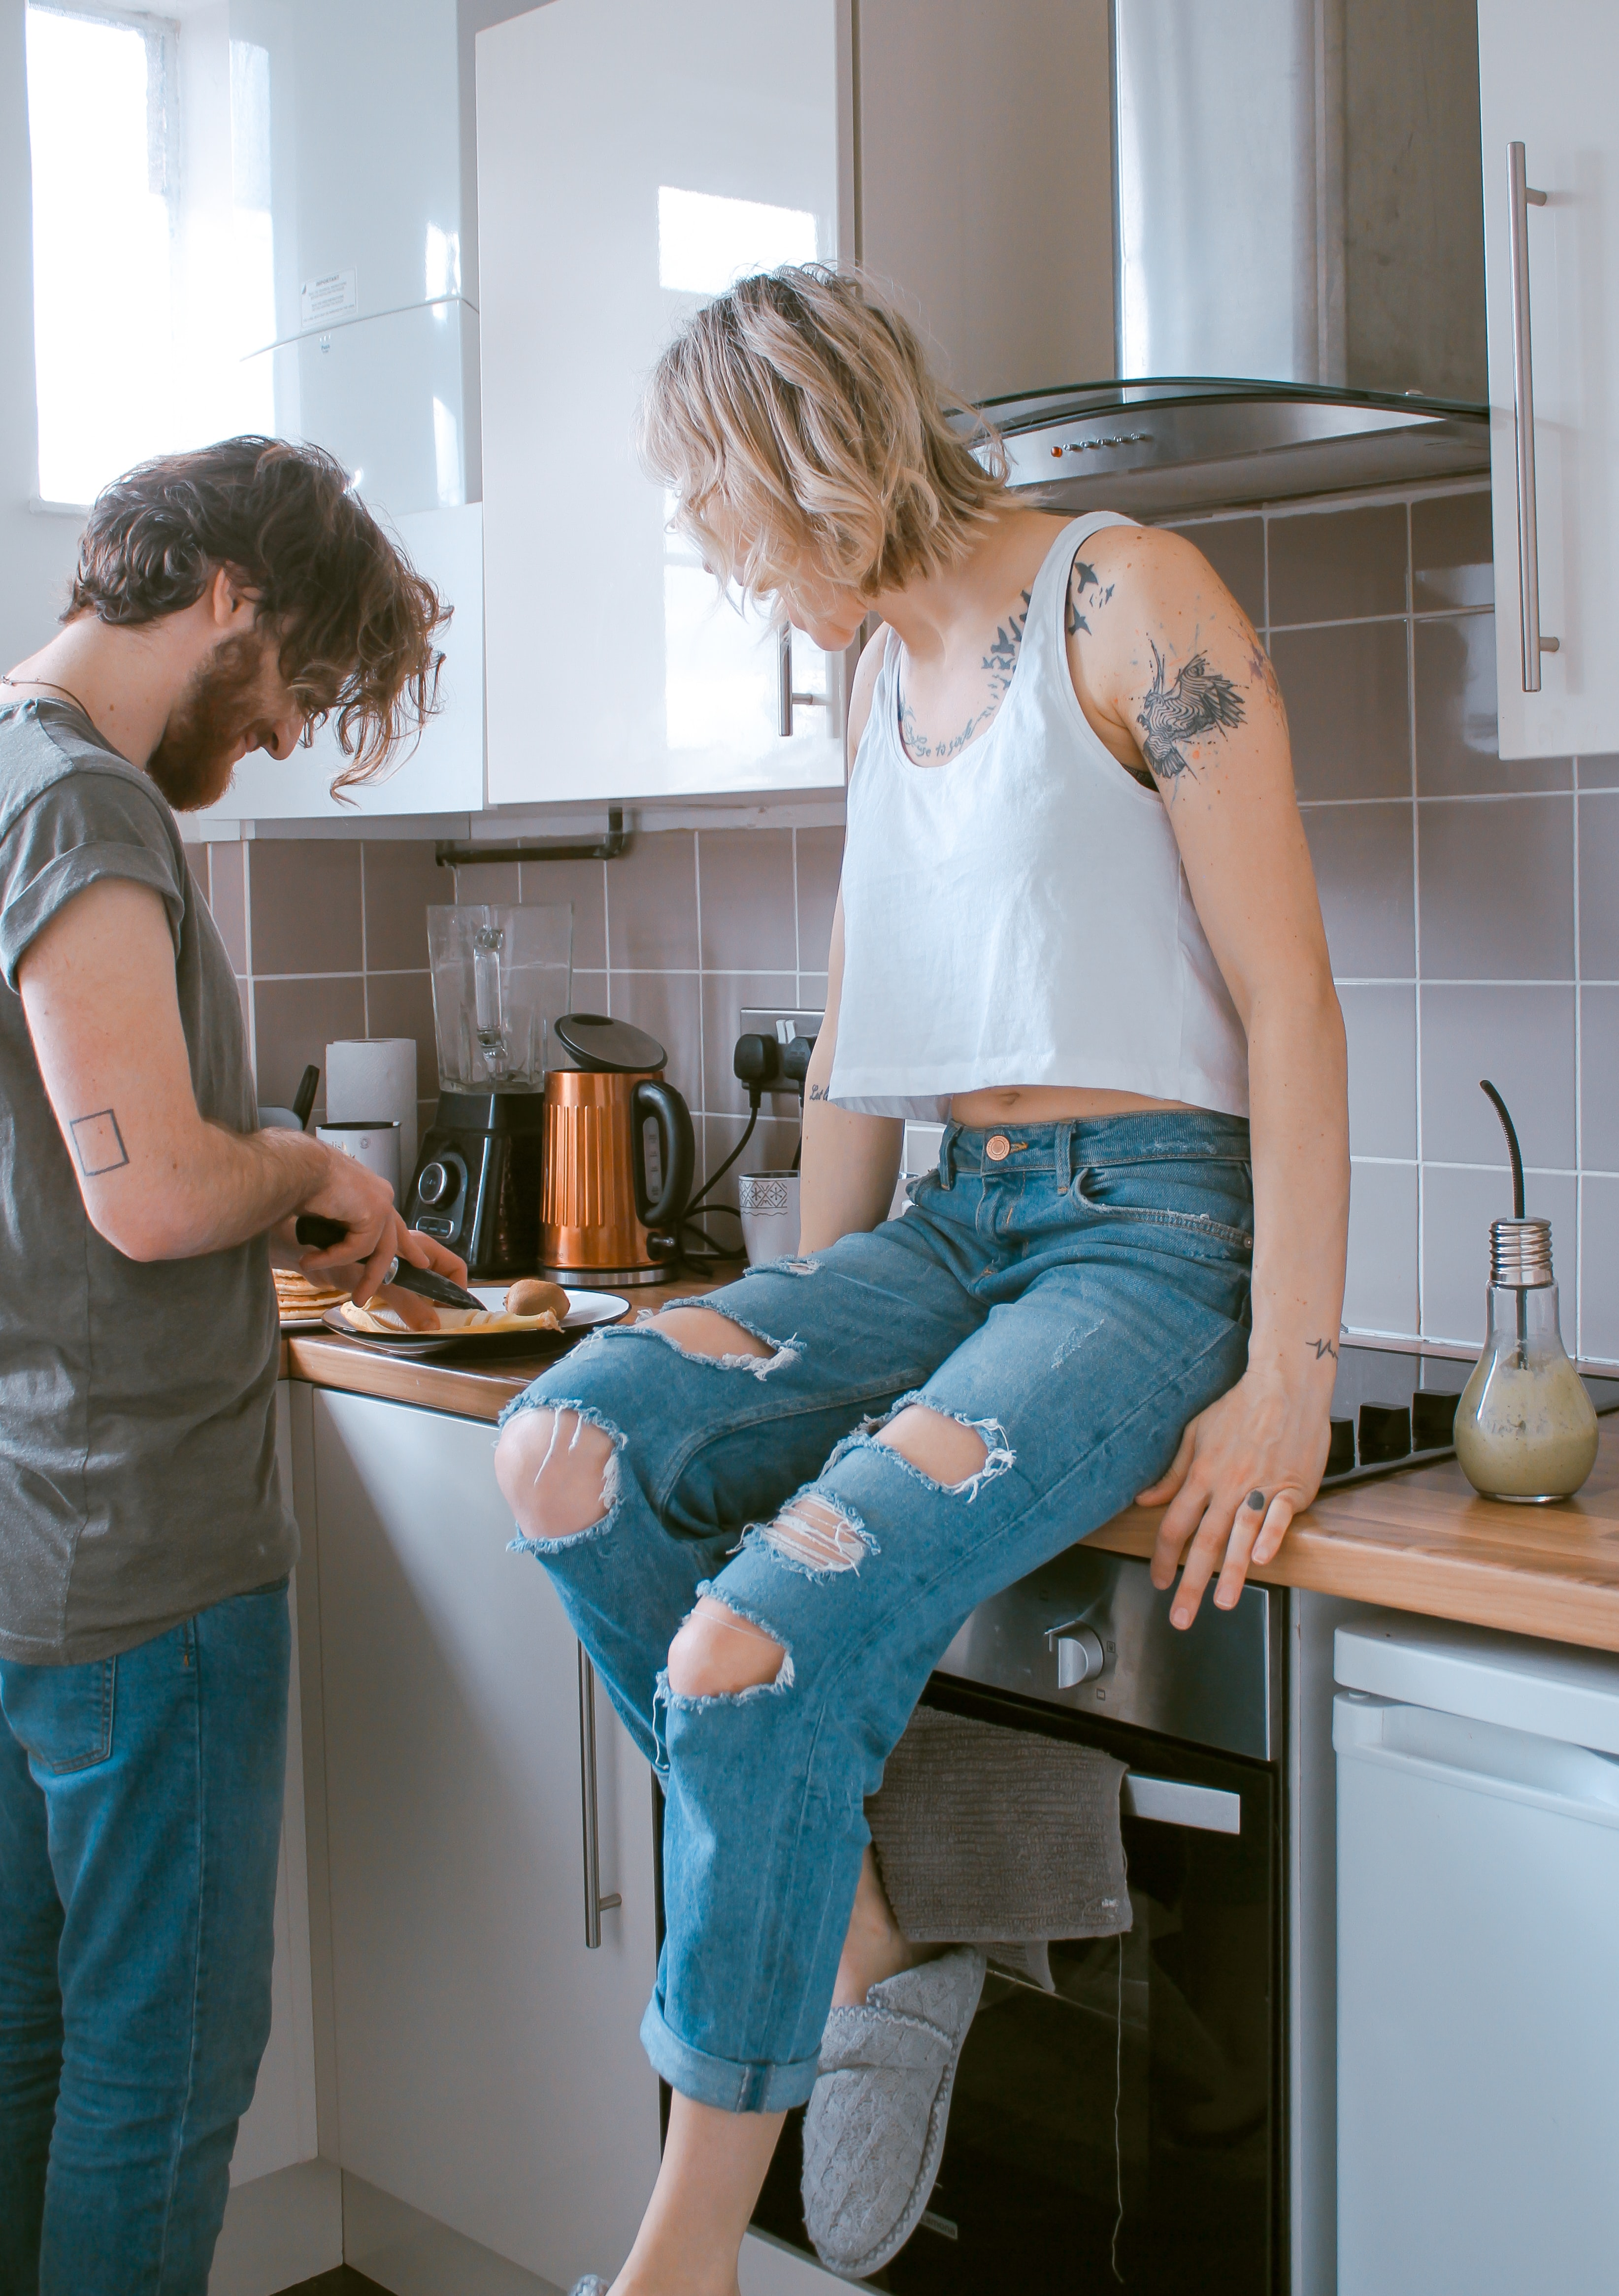 A woman sitting on the kitchen counter while watching a man prepare food.